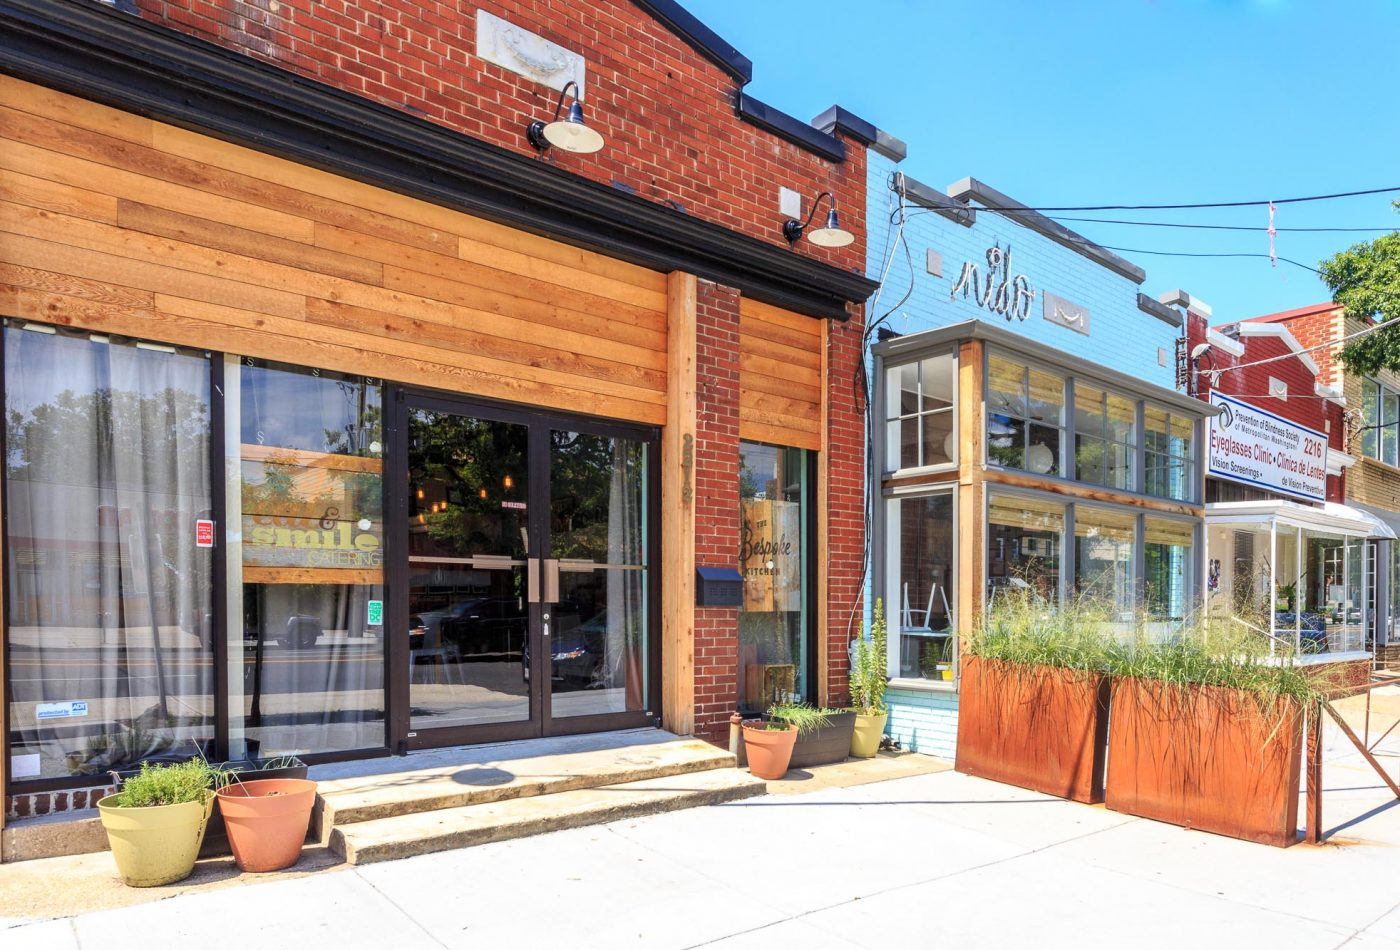 Brookland Neighborhood - The Bespoke Kitchen